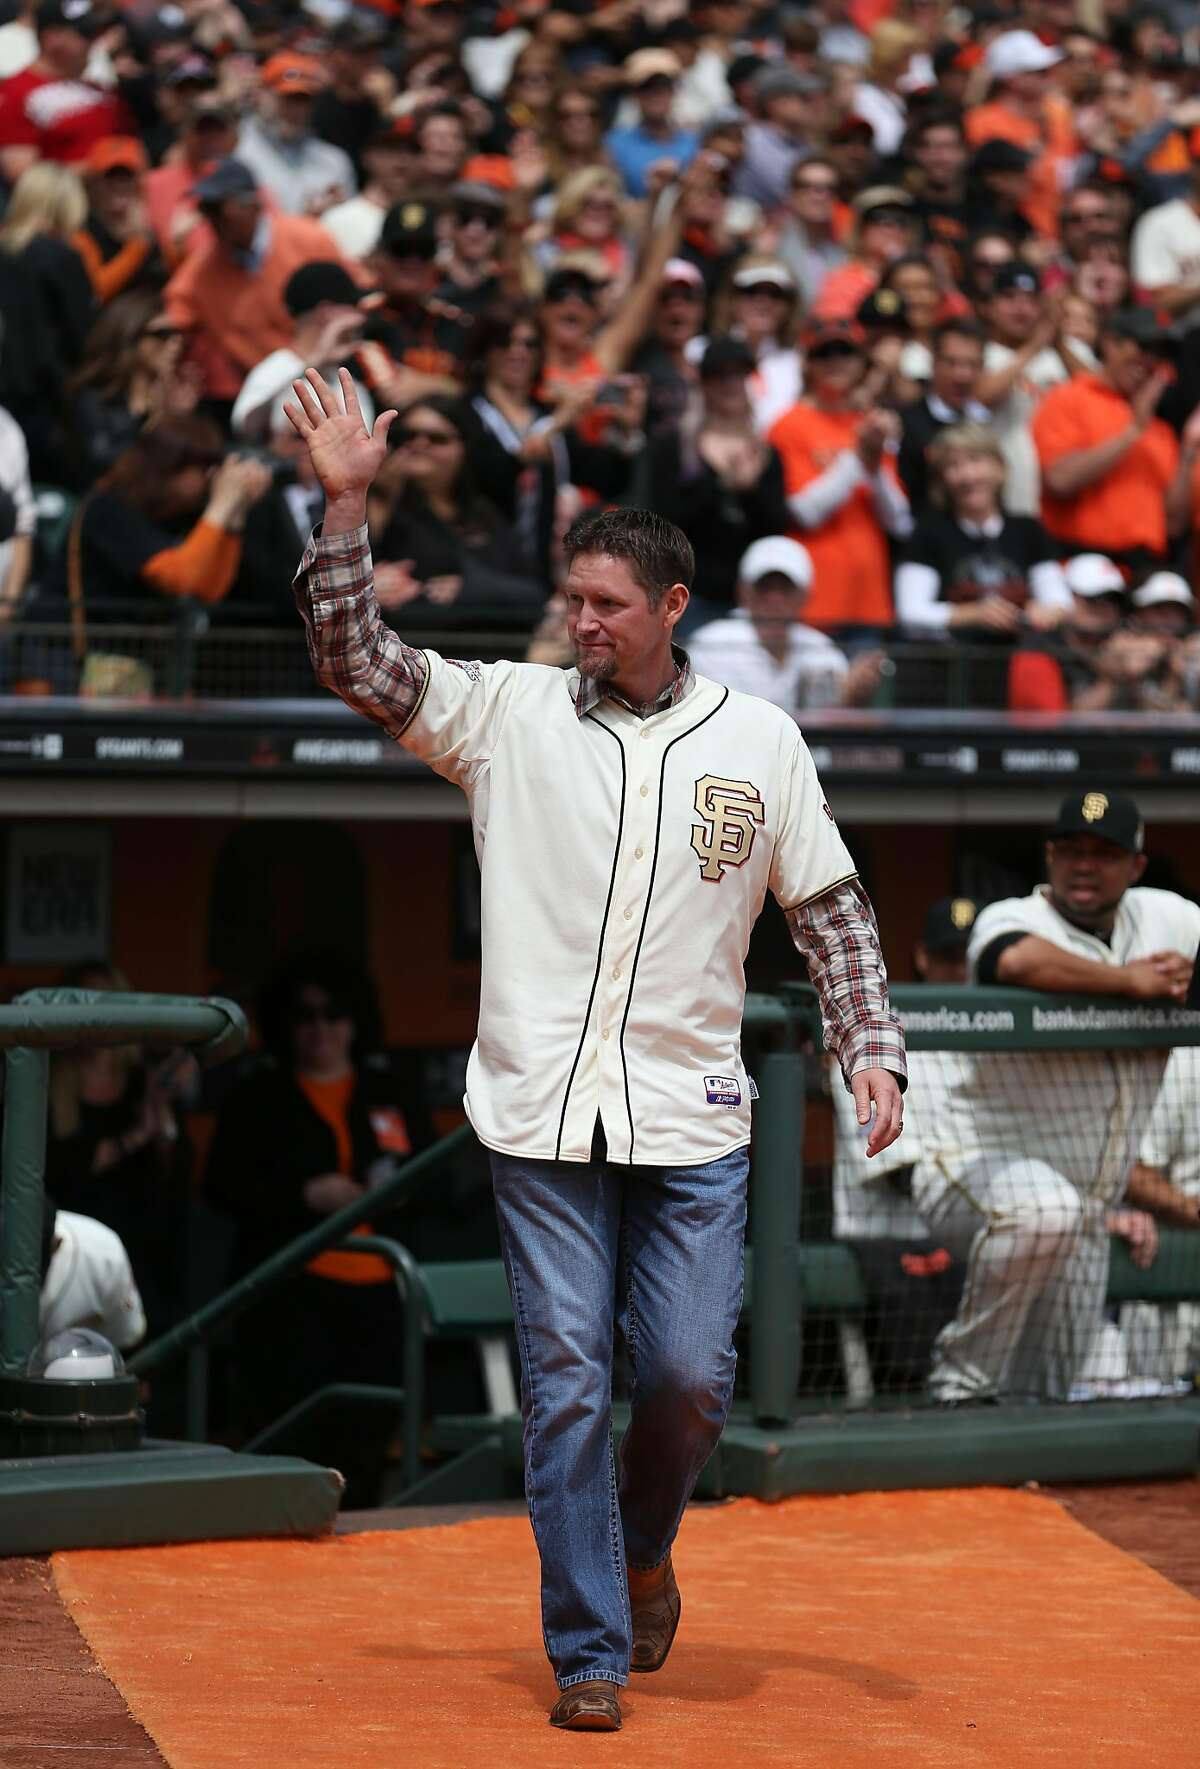 Former player Aubrey Huff of the San Francisco Giants waves to the crowd as he walks on to the field to receive his 2012 Championship Ring during the pre-game ceremony honoring the 2012 World Series champions before their game against the St. Louis Cardinals at AT&T Park on April 7, 2013 in San Francisco, California.